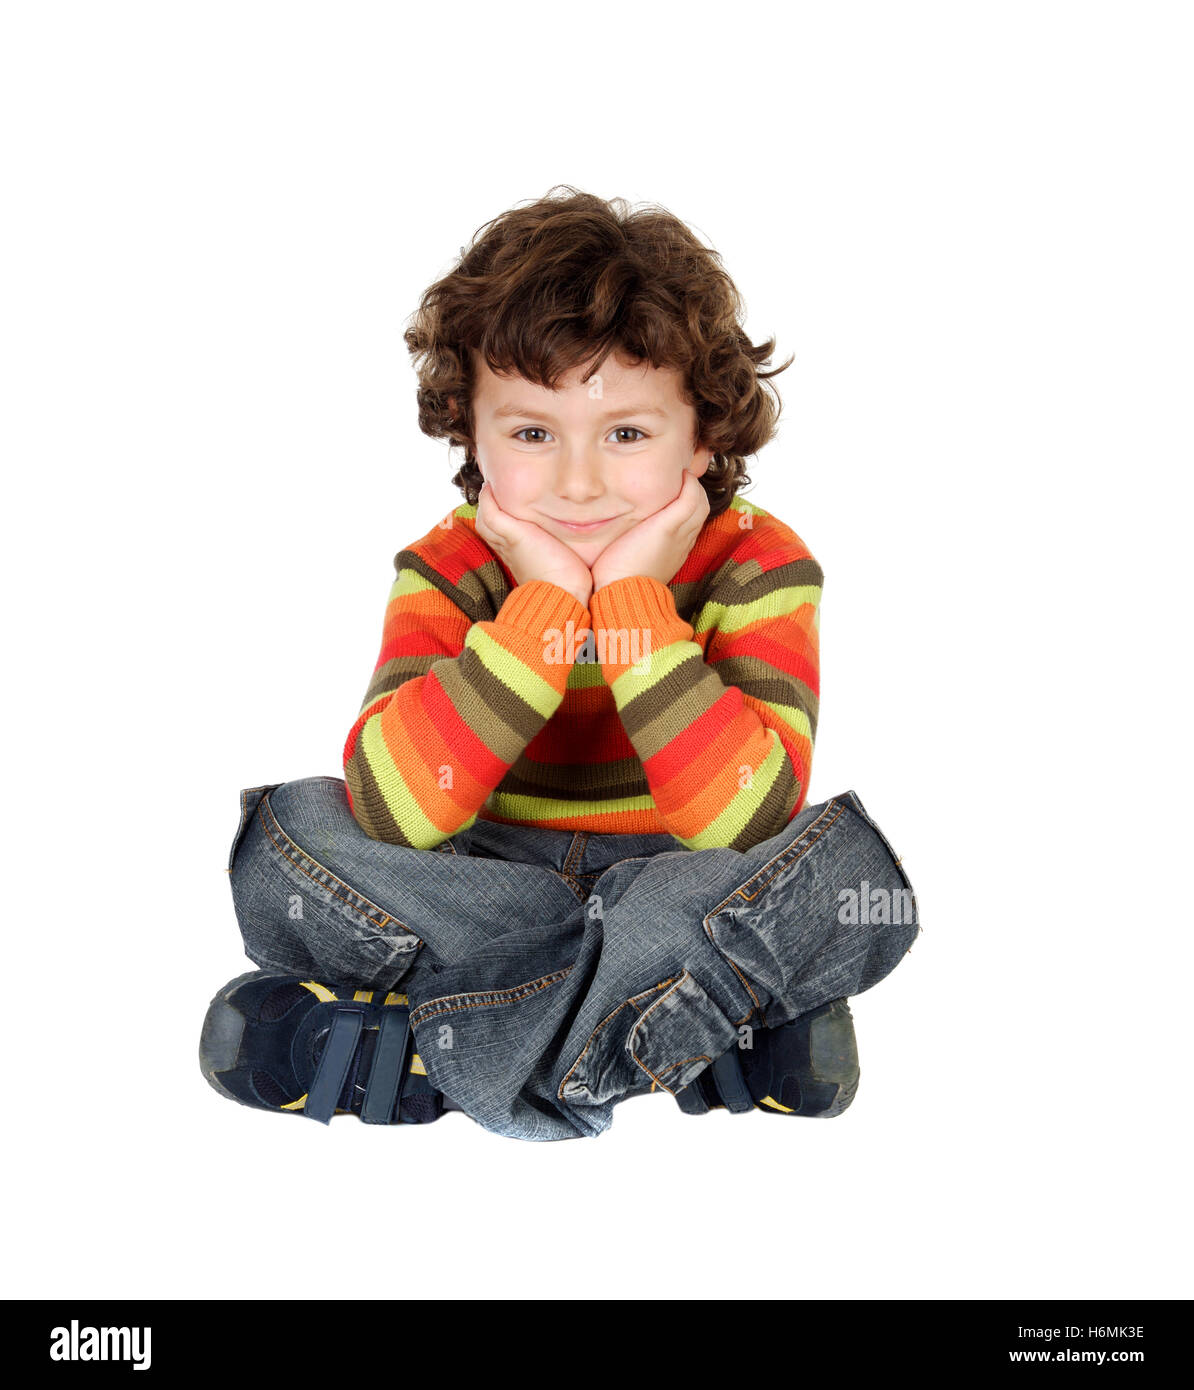 Nice boy with seven years old sitting on the white floor thinking - Stock Image